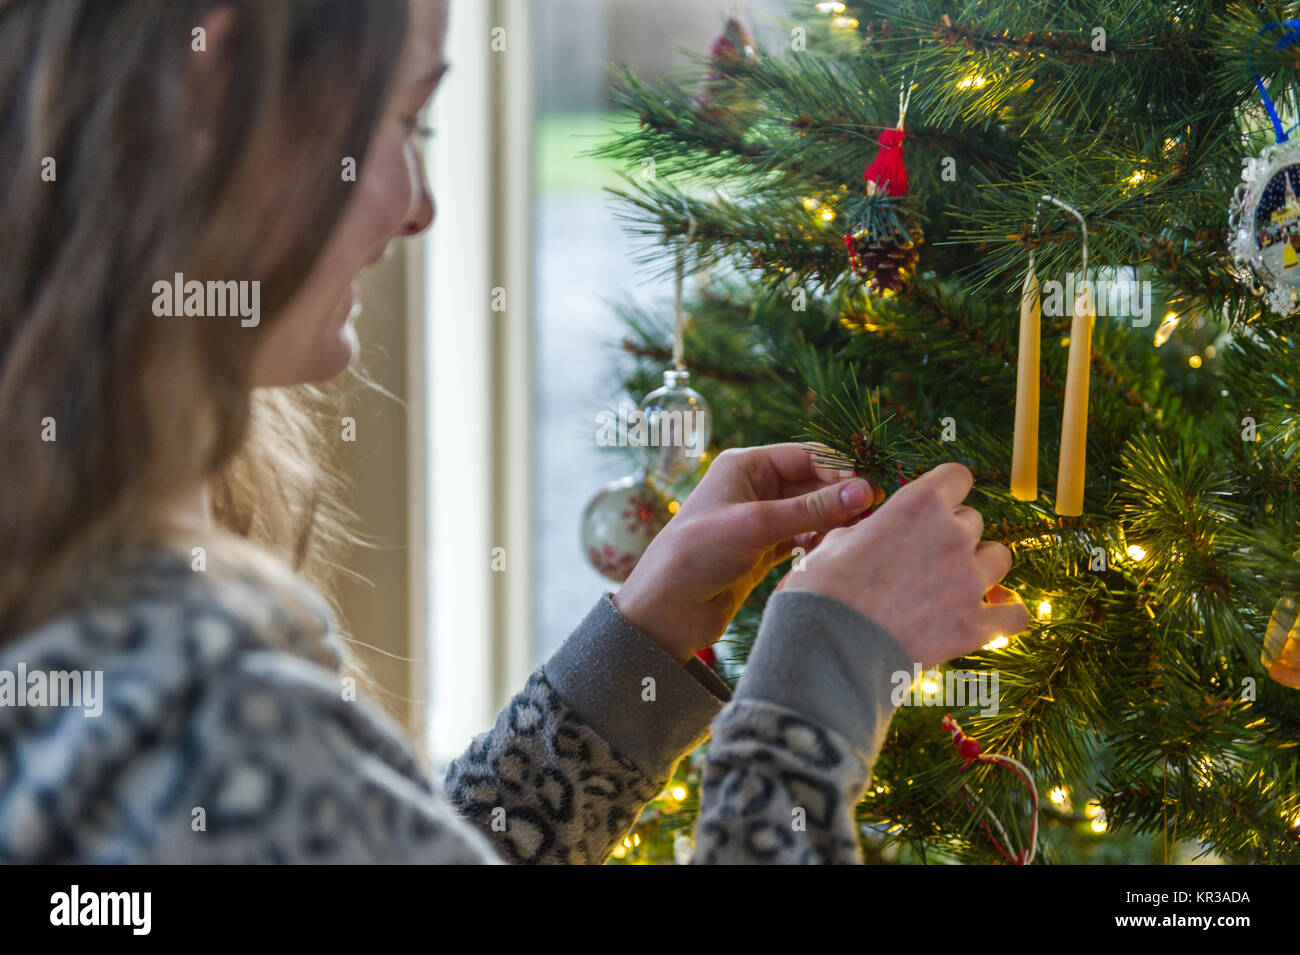 Close up of teenager decorating a Christmas Tree with illuminated lights. - Stock Image